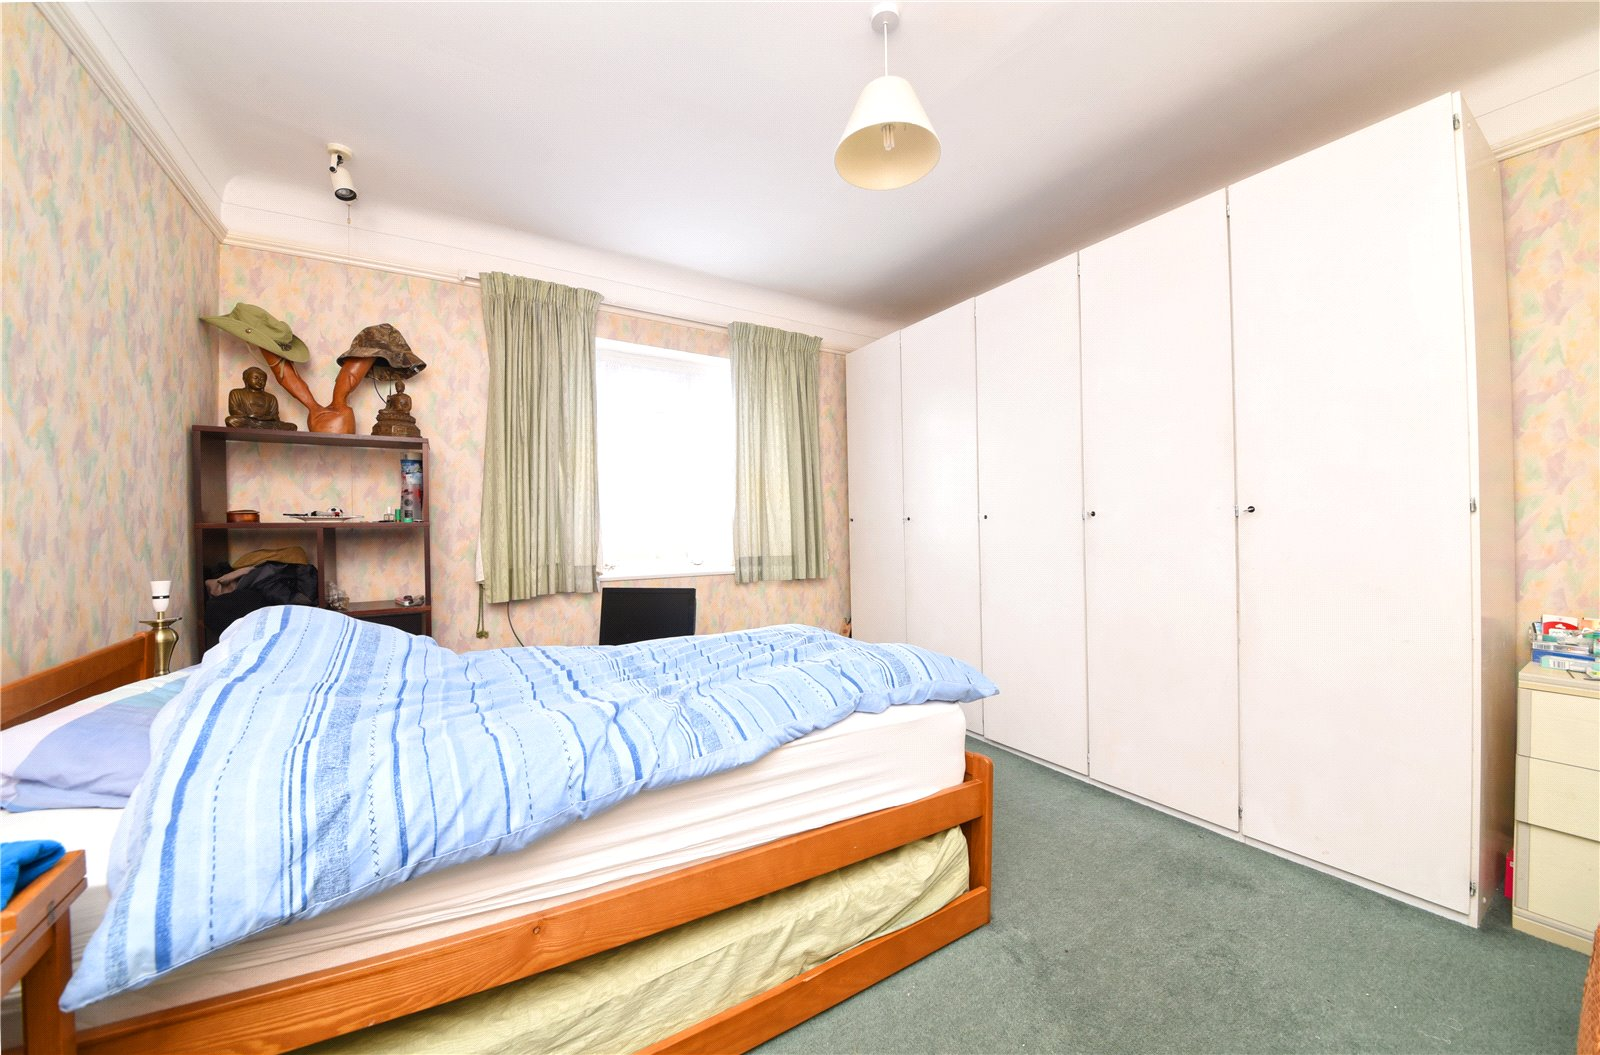 3 bed house for sale in London, N12 9ND 9